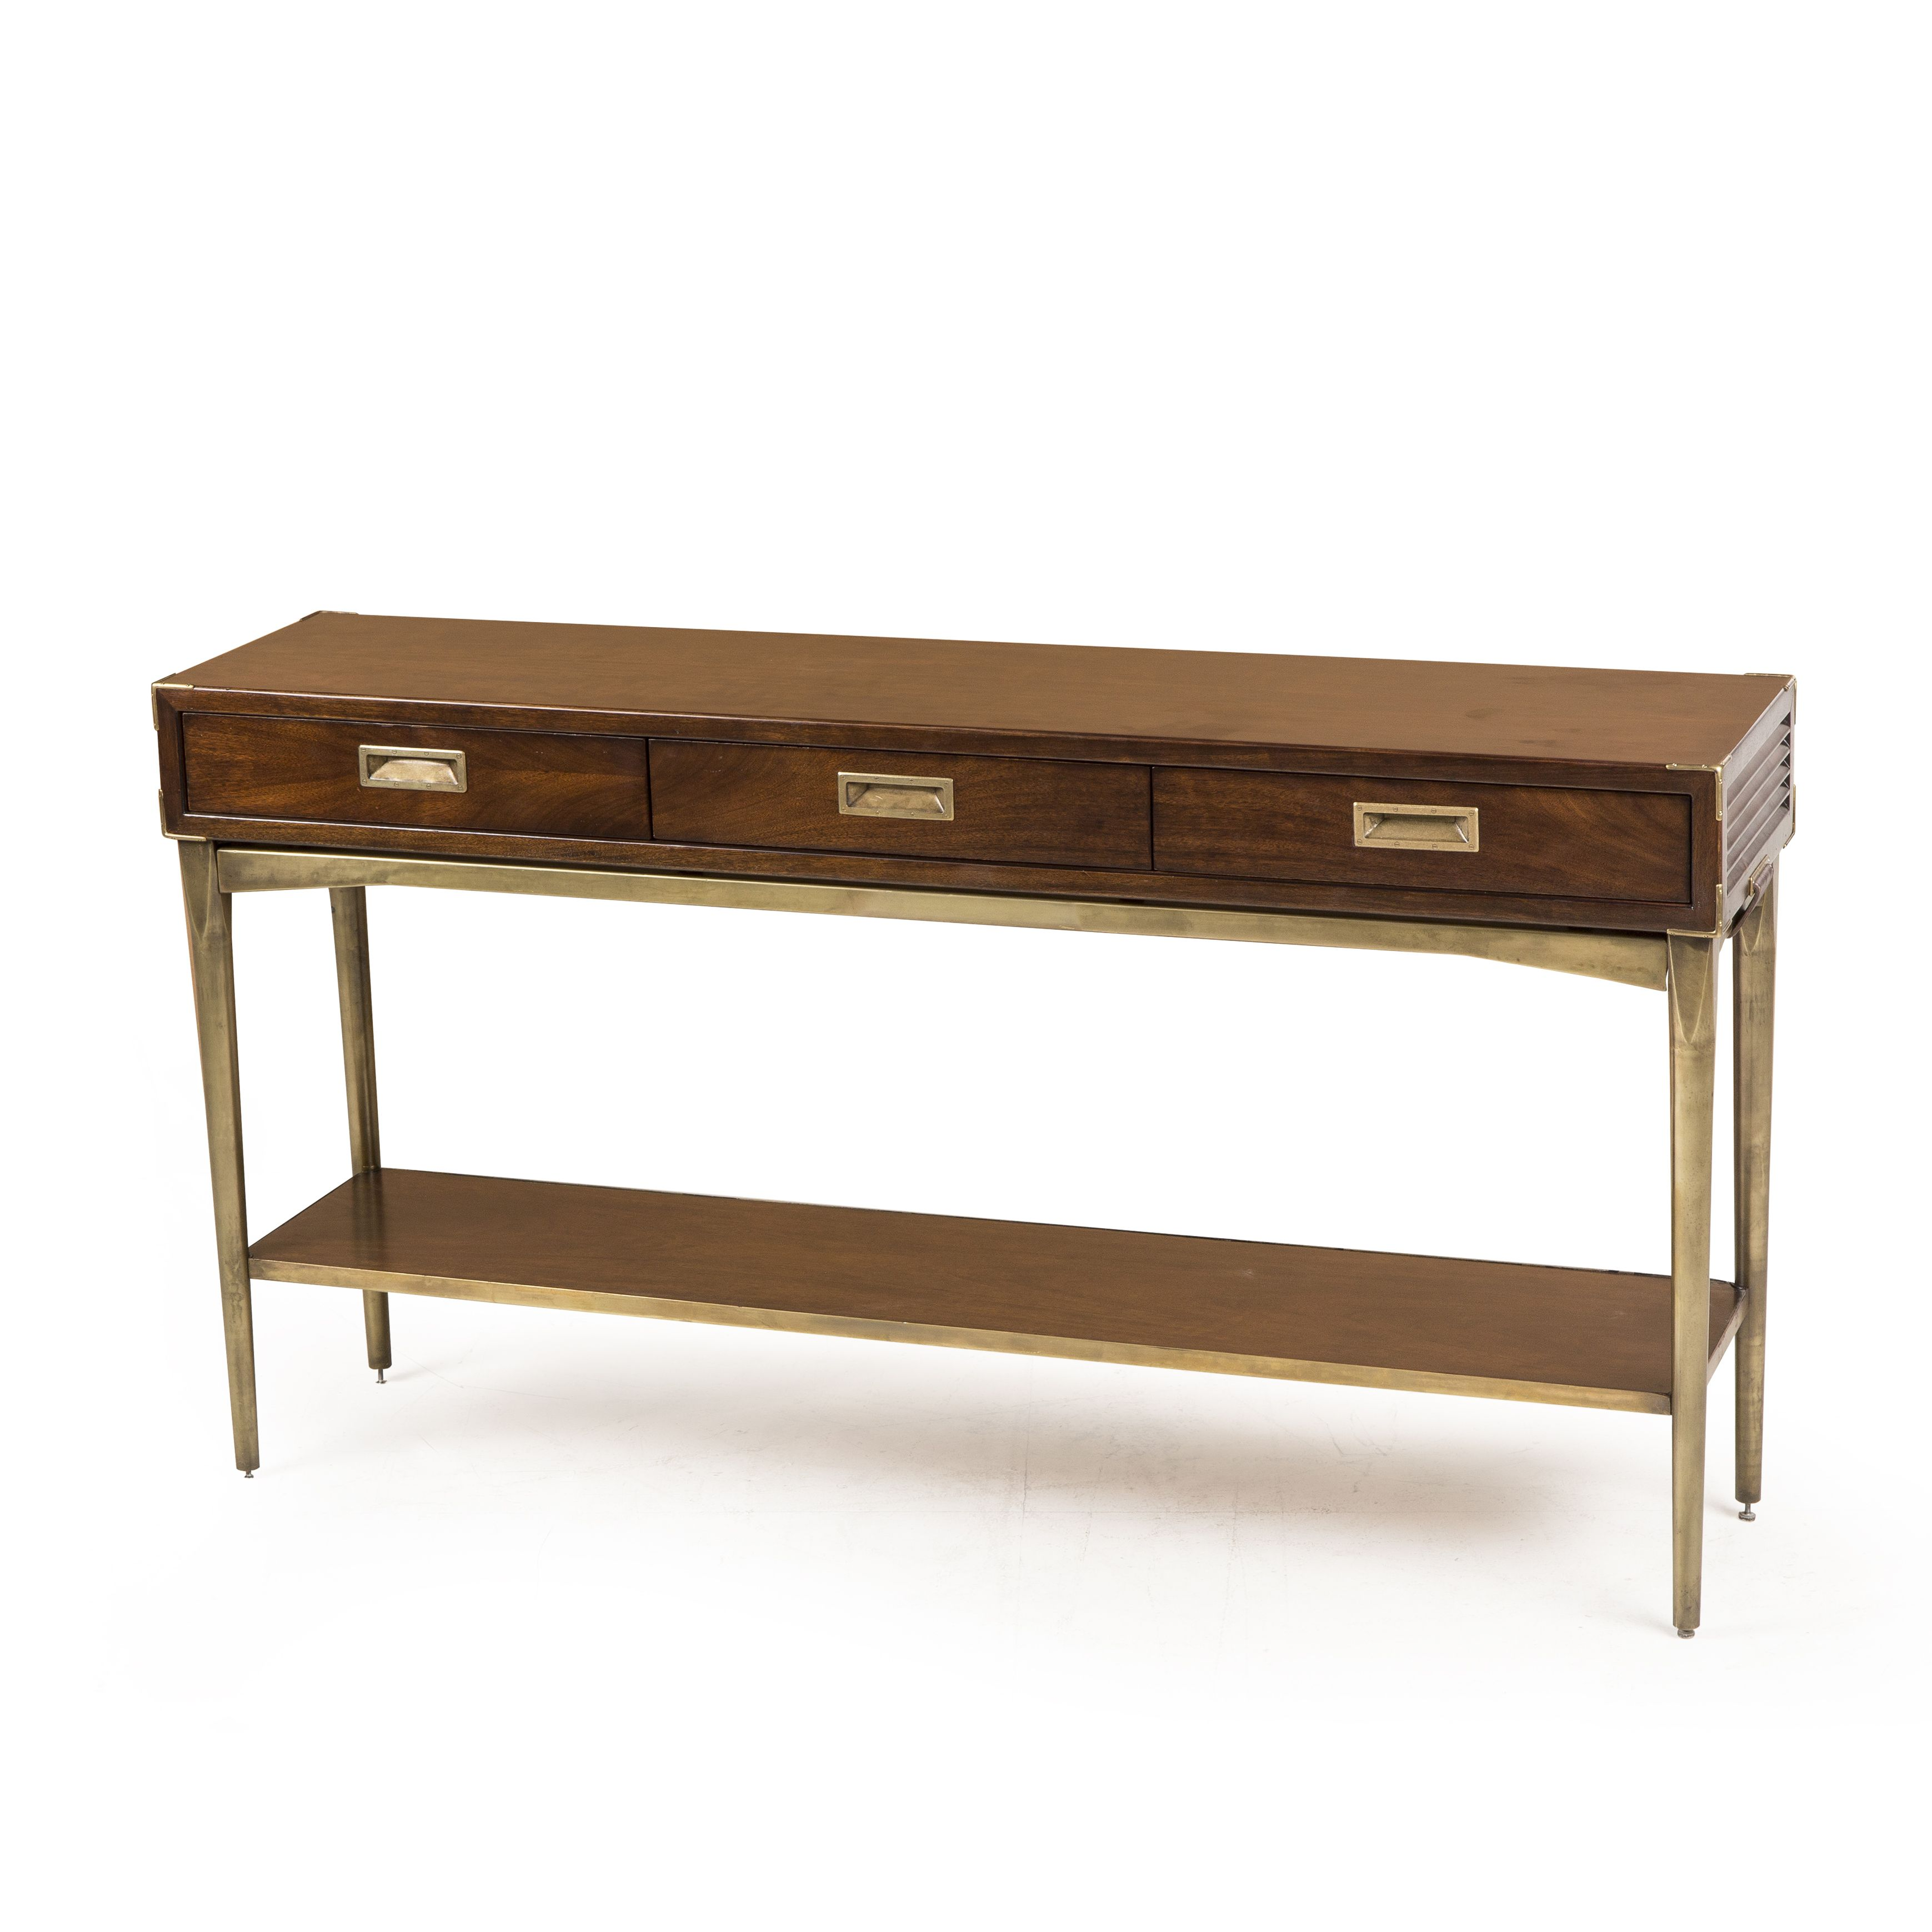 Living room durham collection durham console table a slim living room durham collection durham console table a slim console with louvered sides geotapseo Images